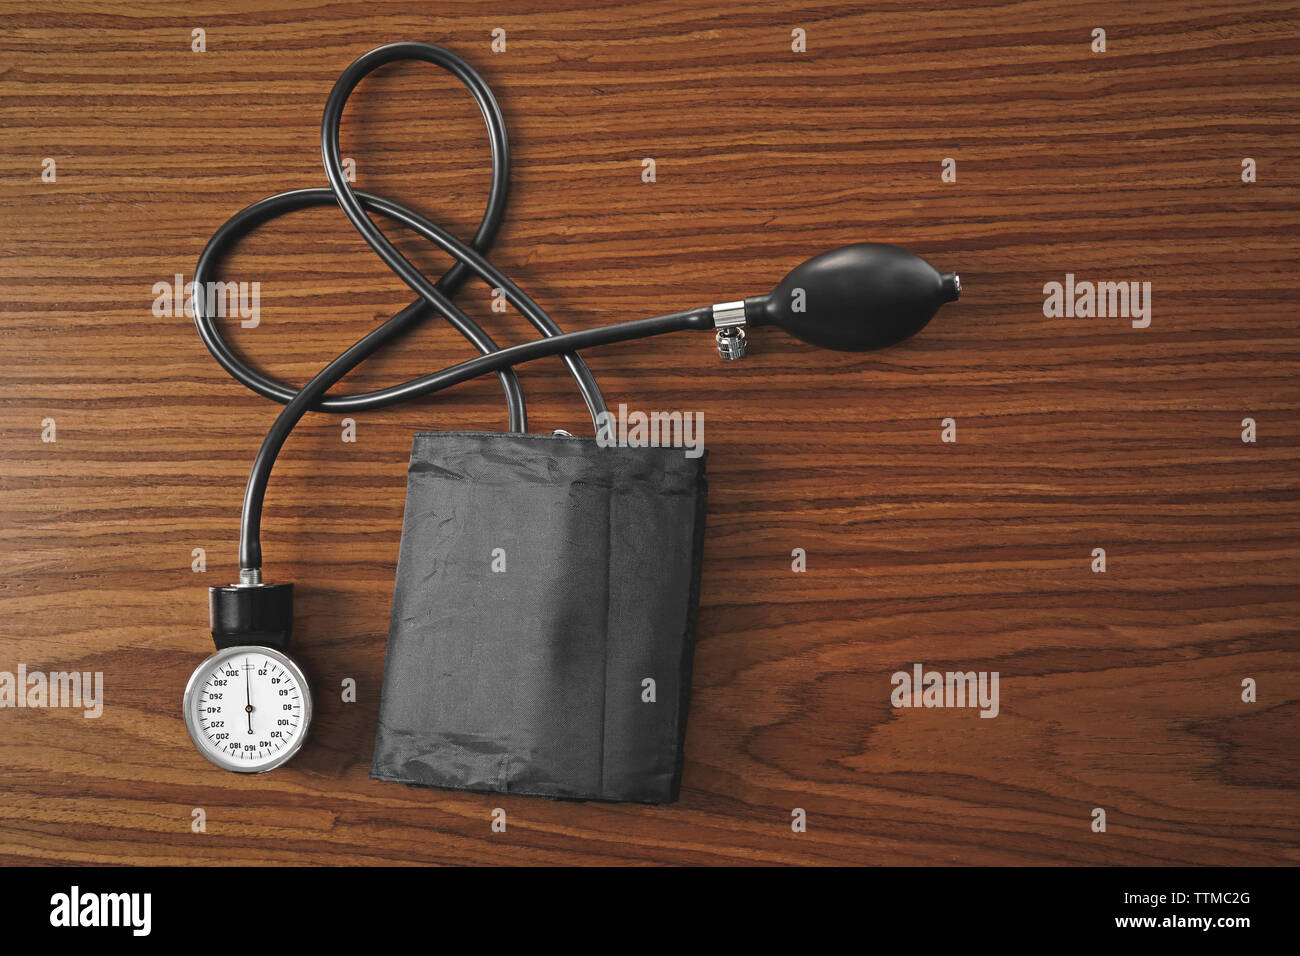 Tonometer on wooden table - Stock Image